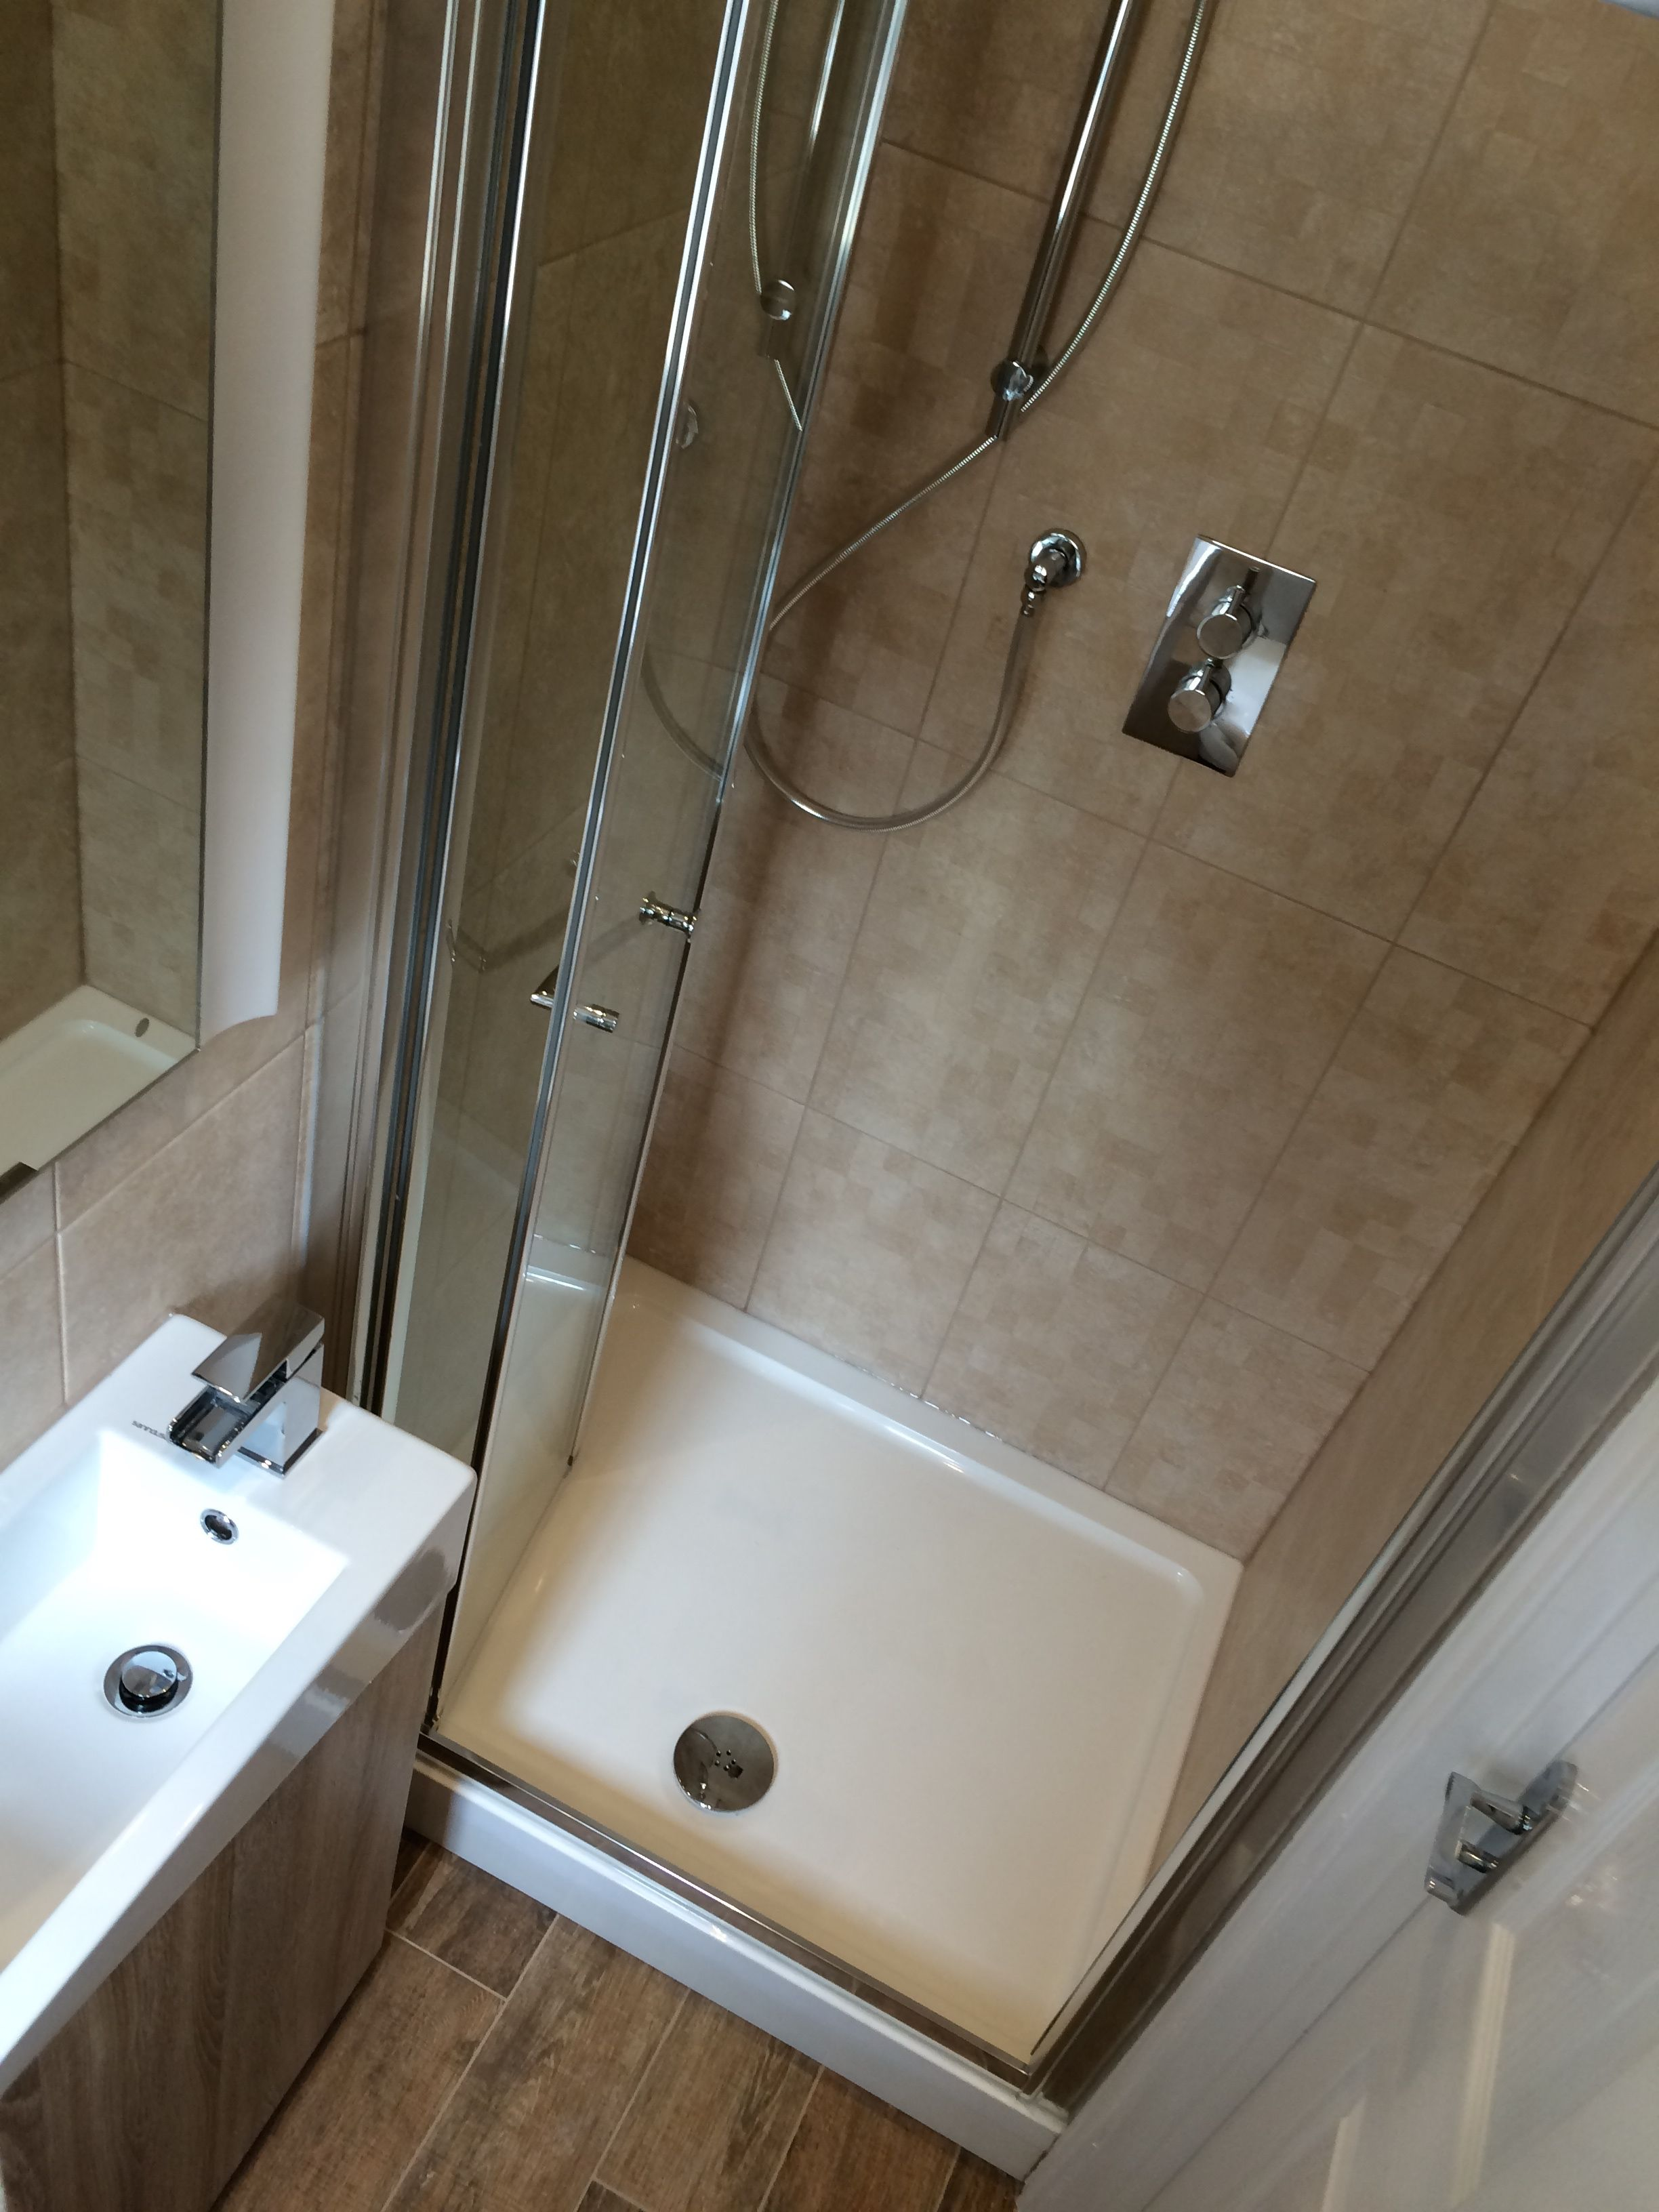 Lovely Compact Ensuite Shower Room With Compact Vanity Basin Plus